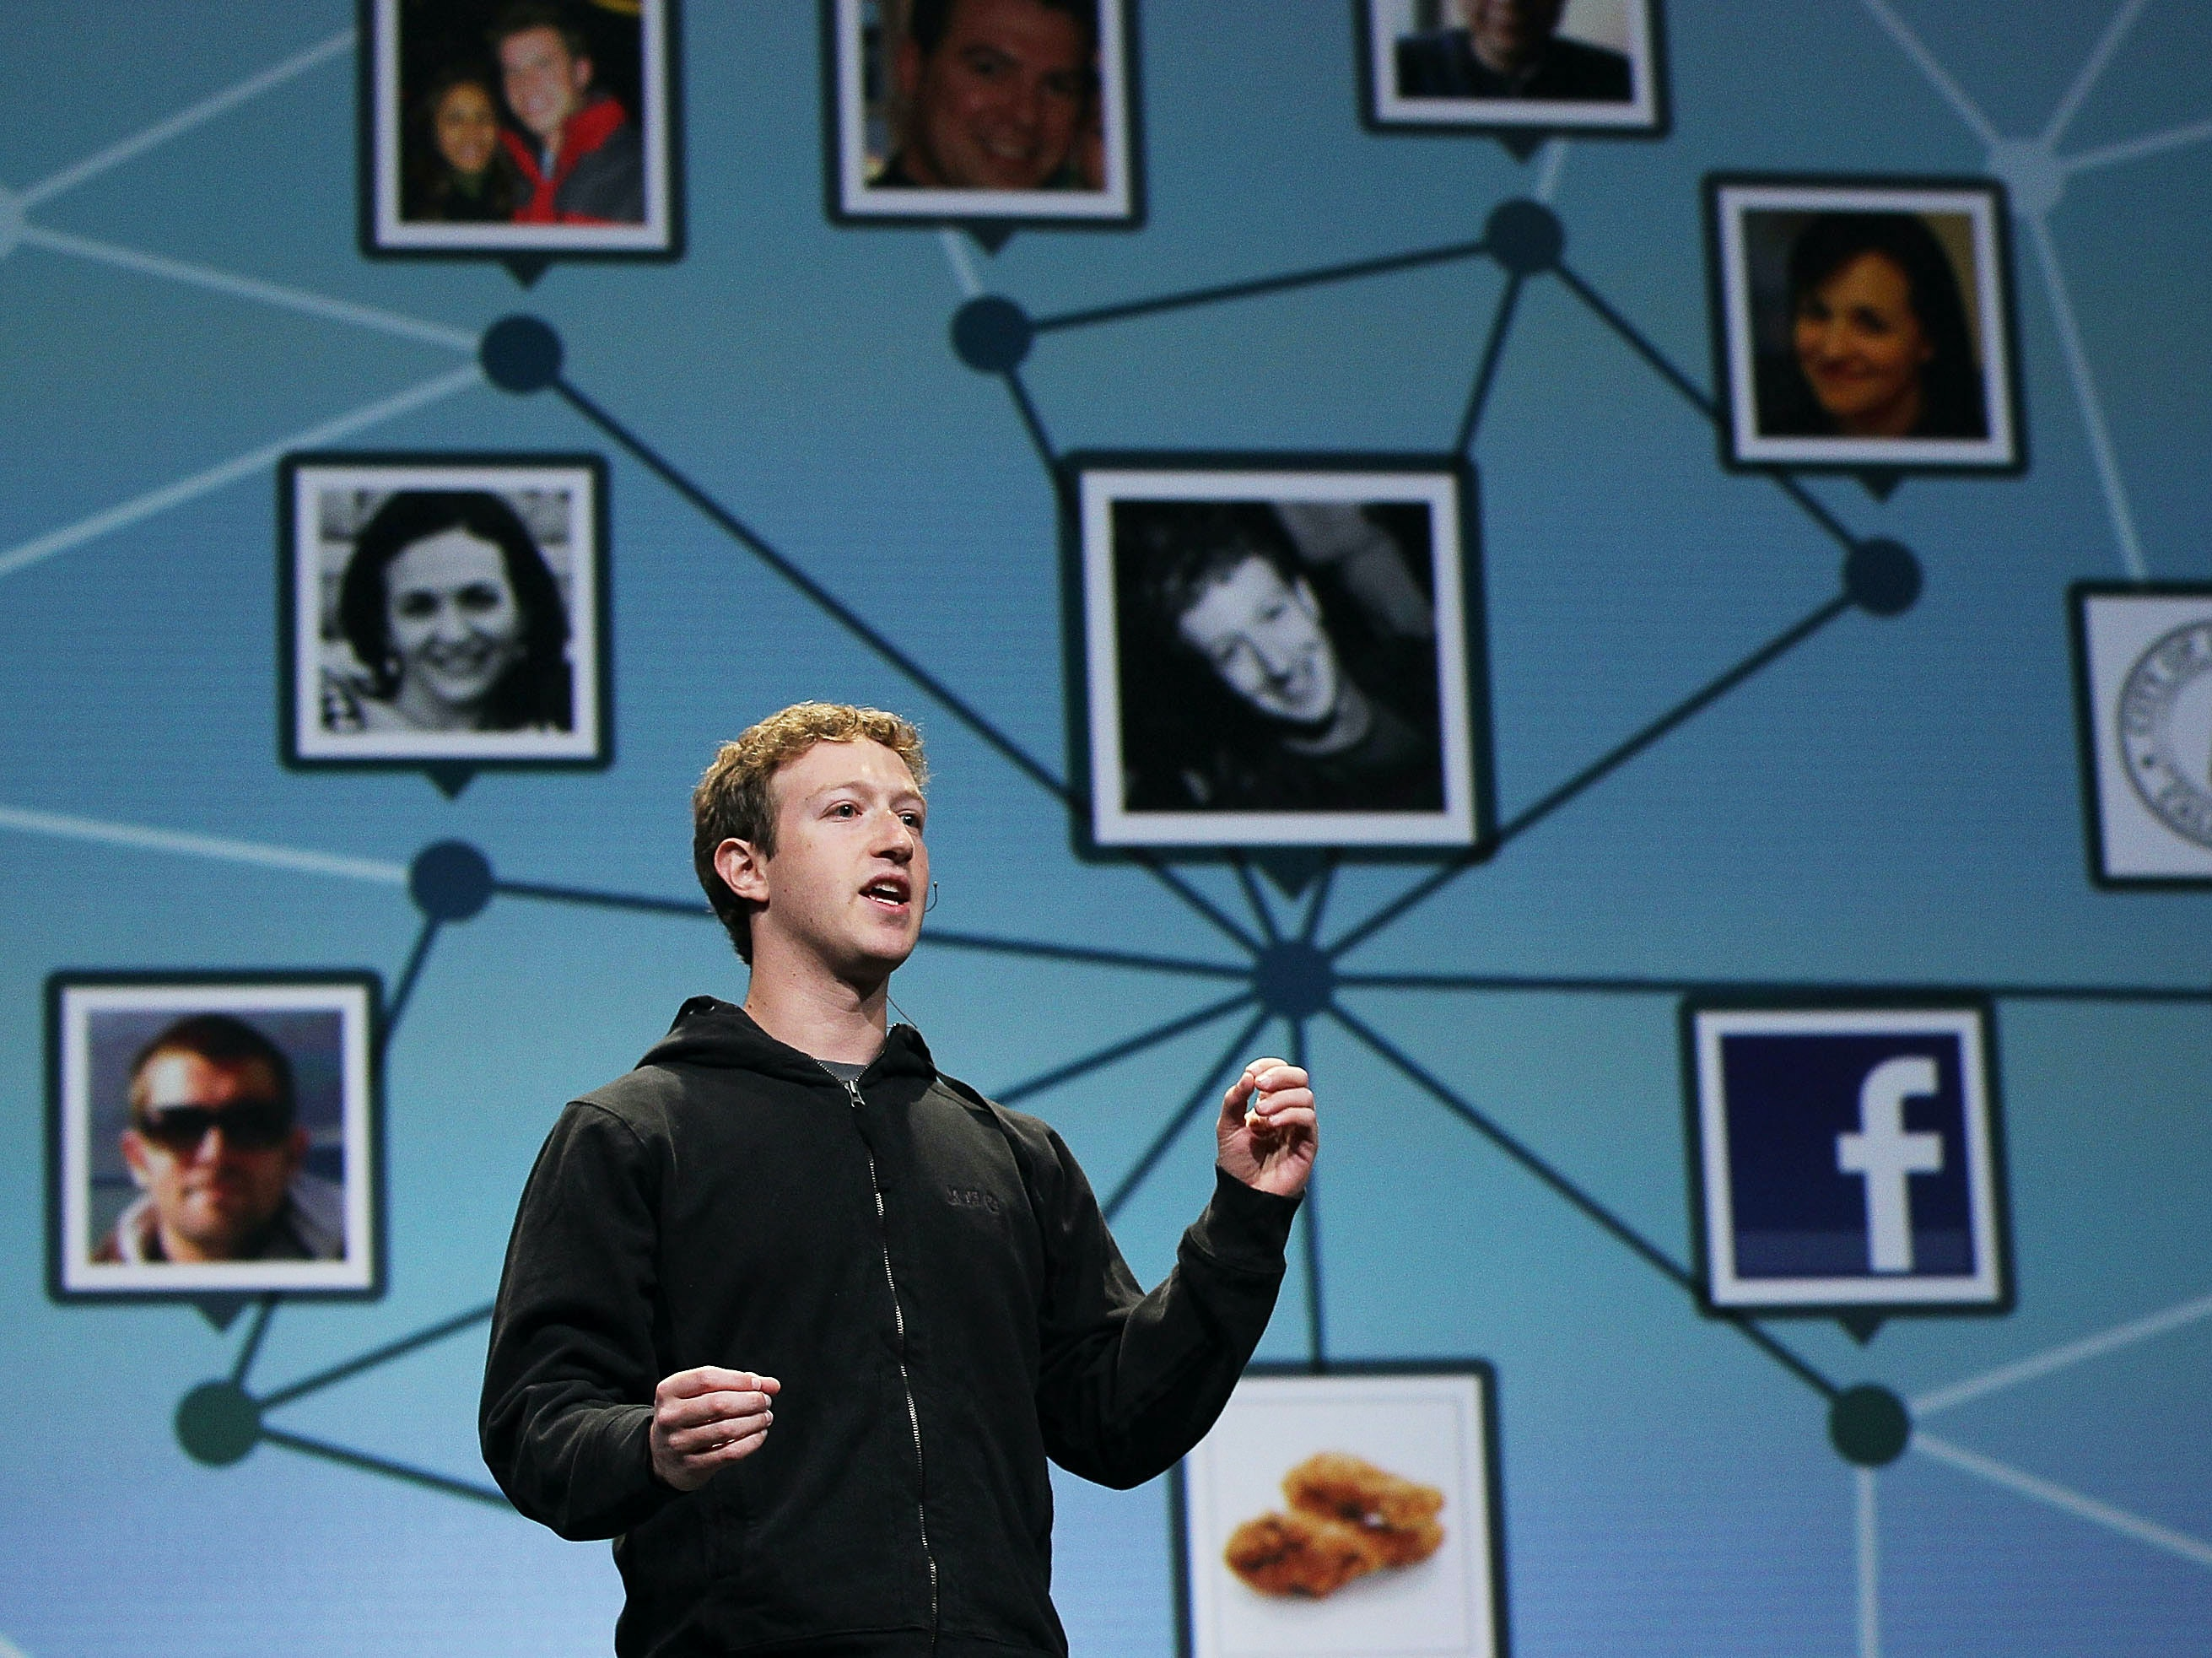 SAN FRANCISCO - APRIL 21:  Facebook founder and CEO Mark Zuckerberg delivers the opening keynote address at the f8 Developer Conference April 21, 2010 in San Francisco, California. Zuckerberg kicked off the the one day conference for developers that features breakout sessions on the future  of social technologies.  (Photo by Justin Sullivan/Getty Images)